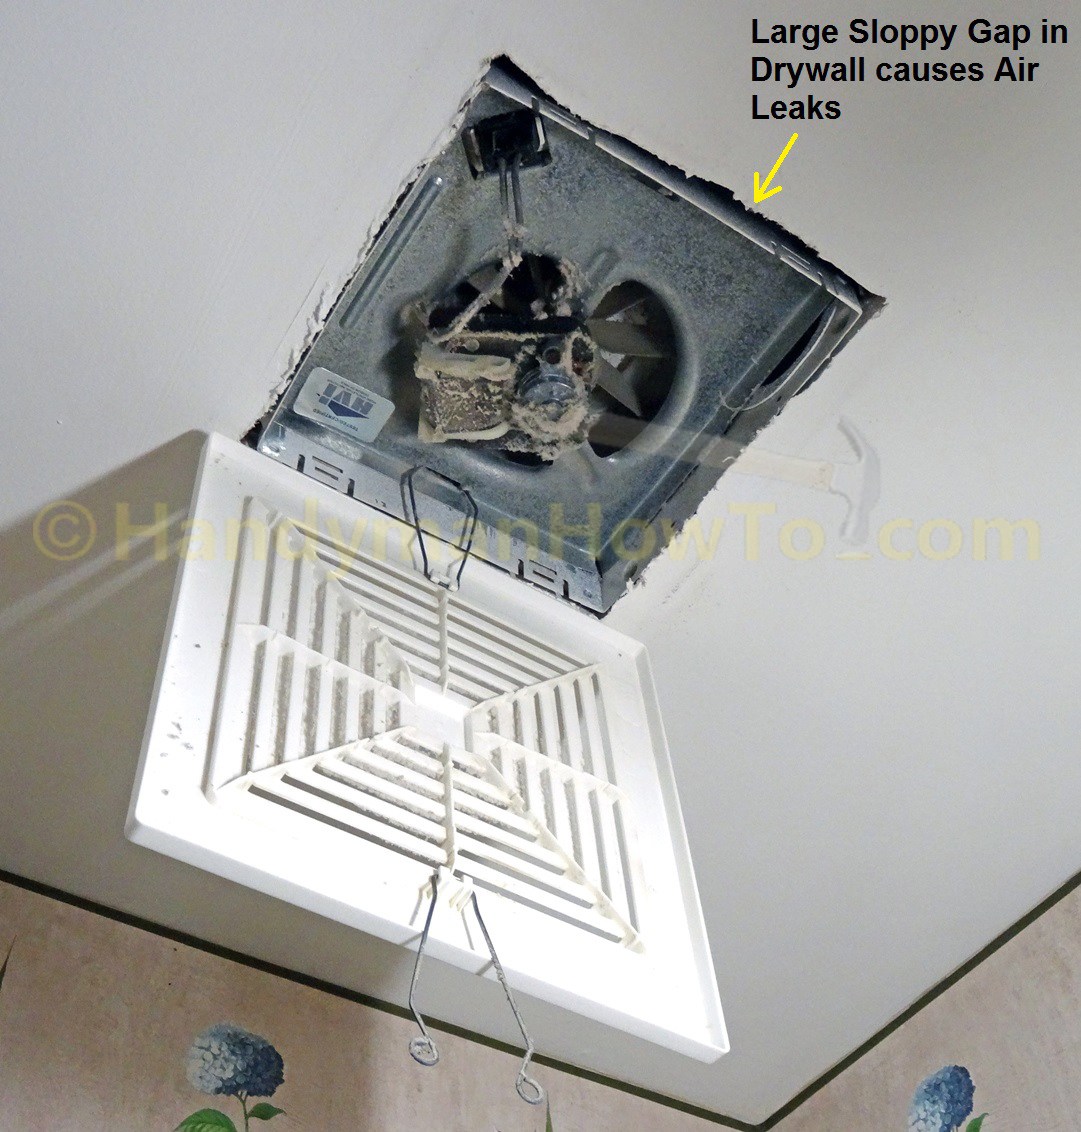 Bath Exhaust Fan Replacement Cover - Bathroom Design Ideas